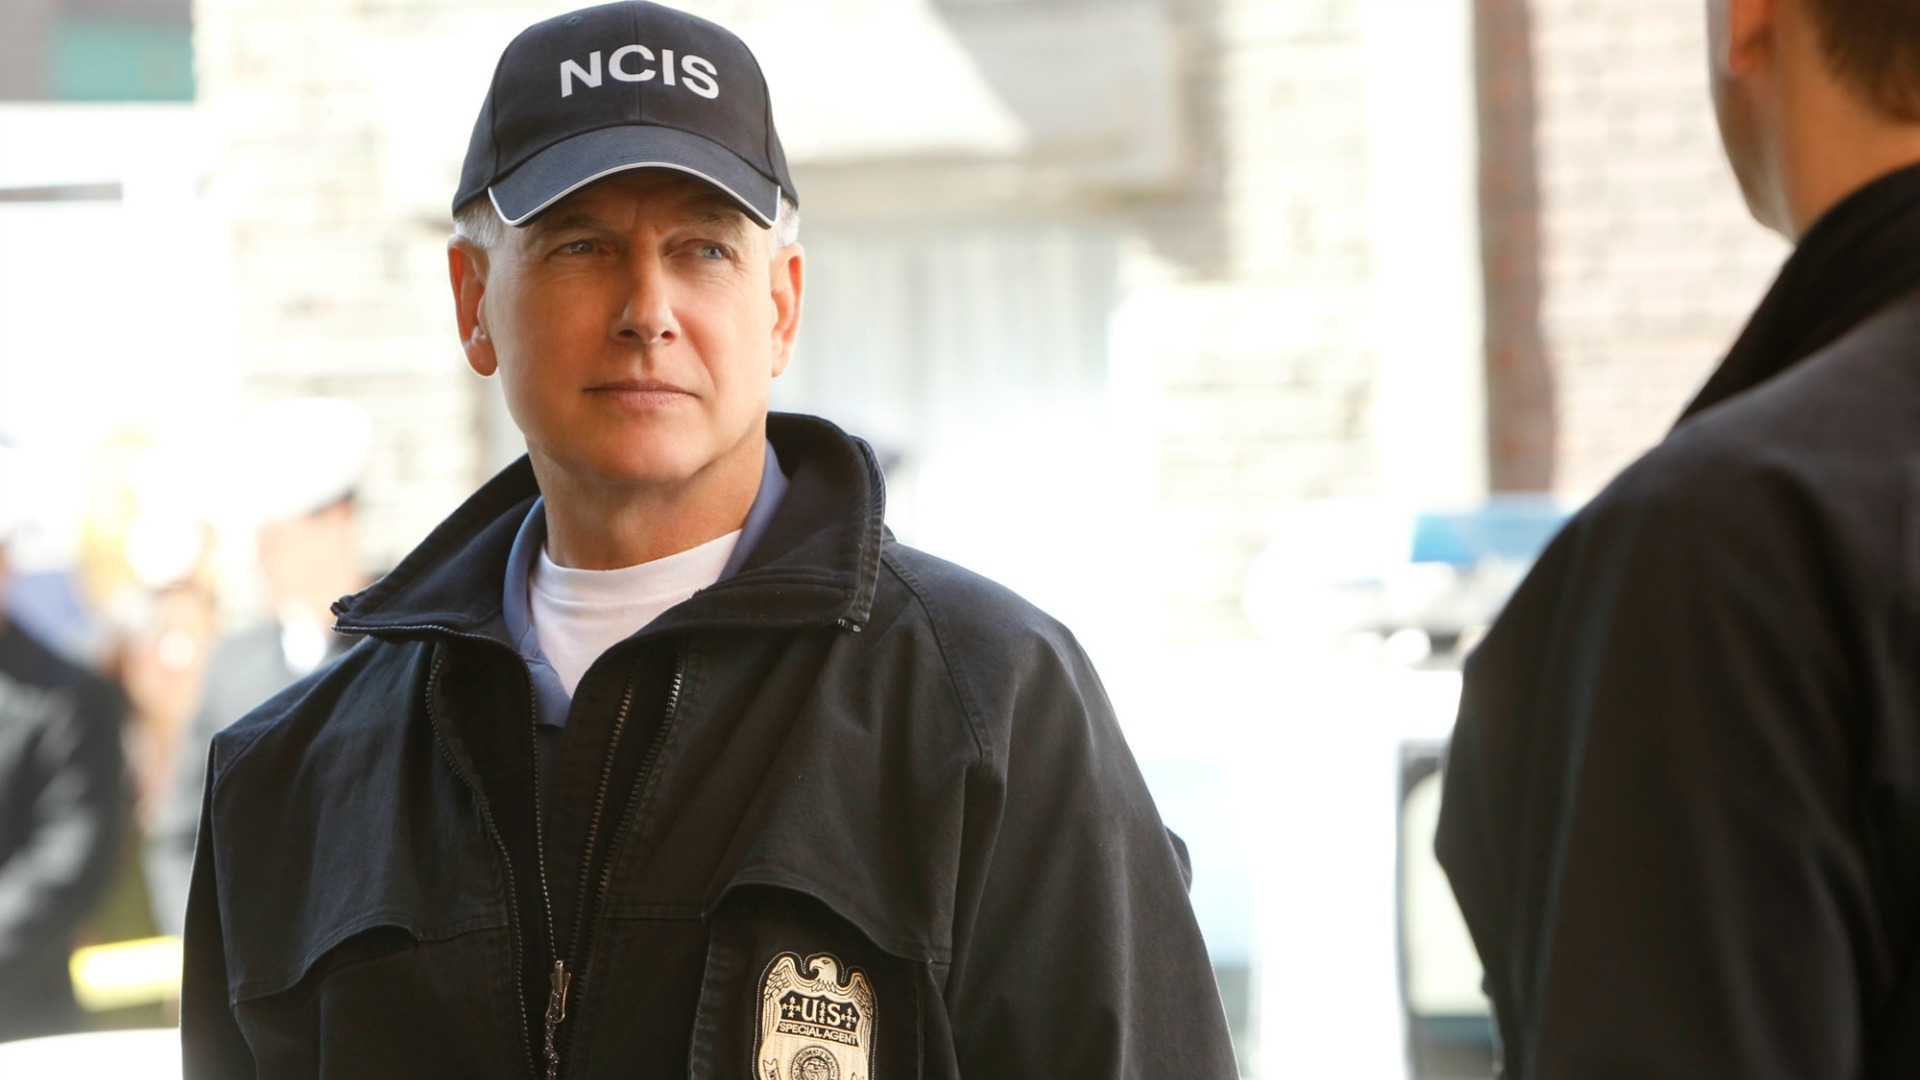 photo about Ncis Gibbs Rules Printable List referred to as Gibbs Regulations: The In depth Checklist Towards NCIS - NCIS Photographs